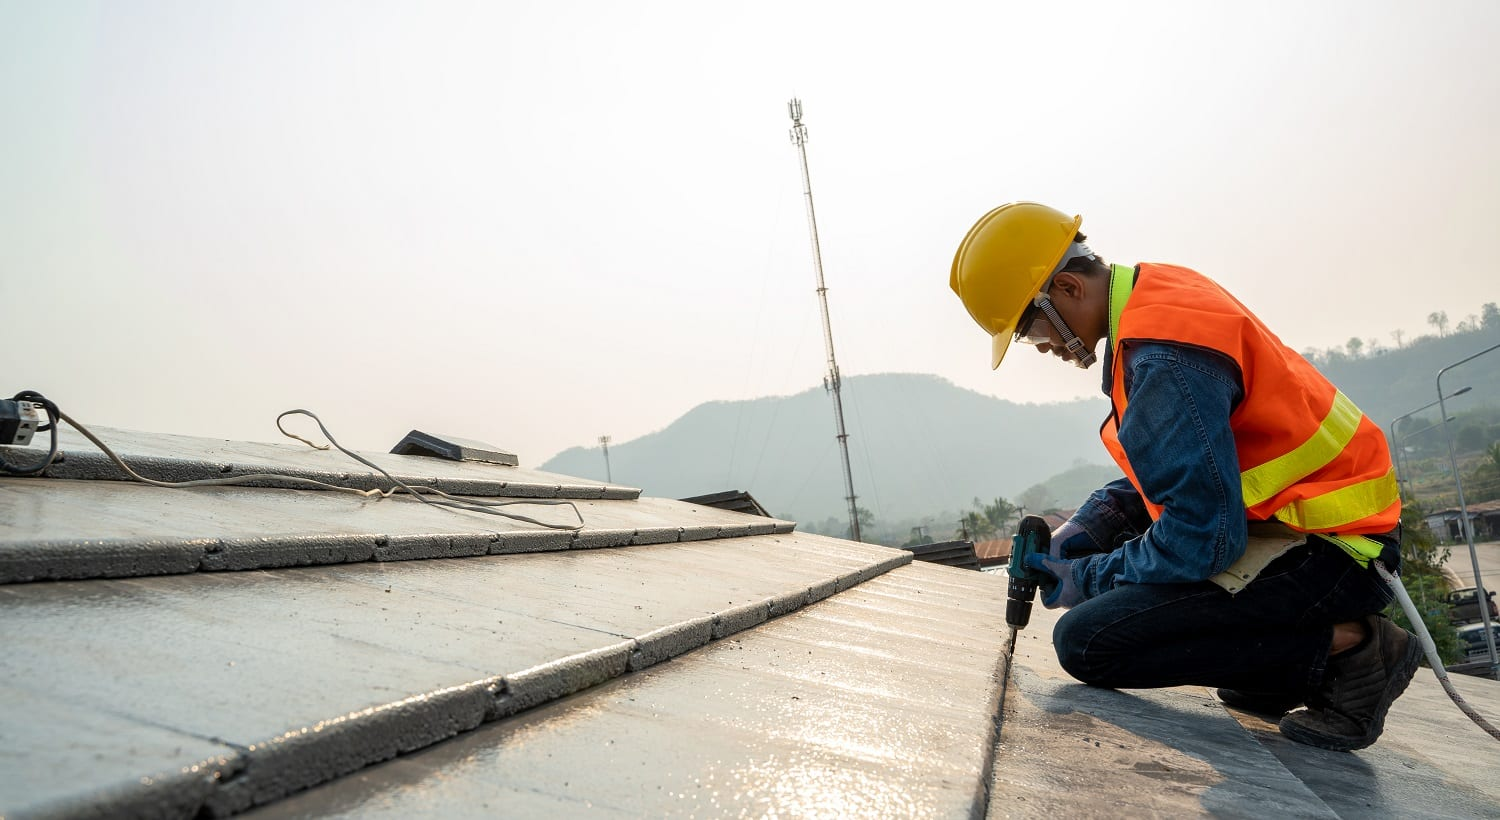 Construction engineer wear safety uniform inspection roofer working on roof structure of building on construction site.